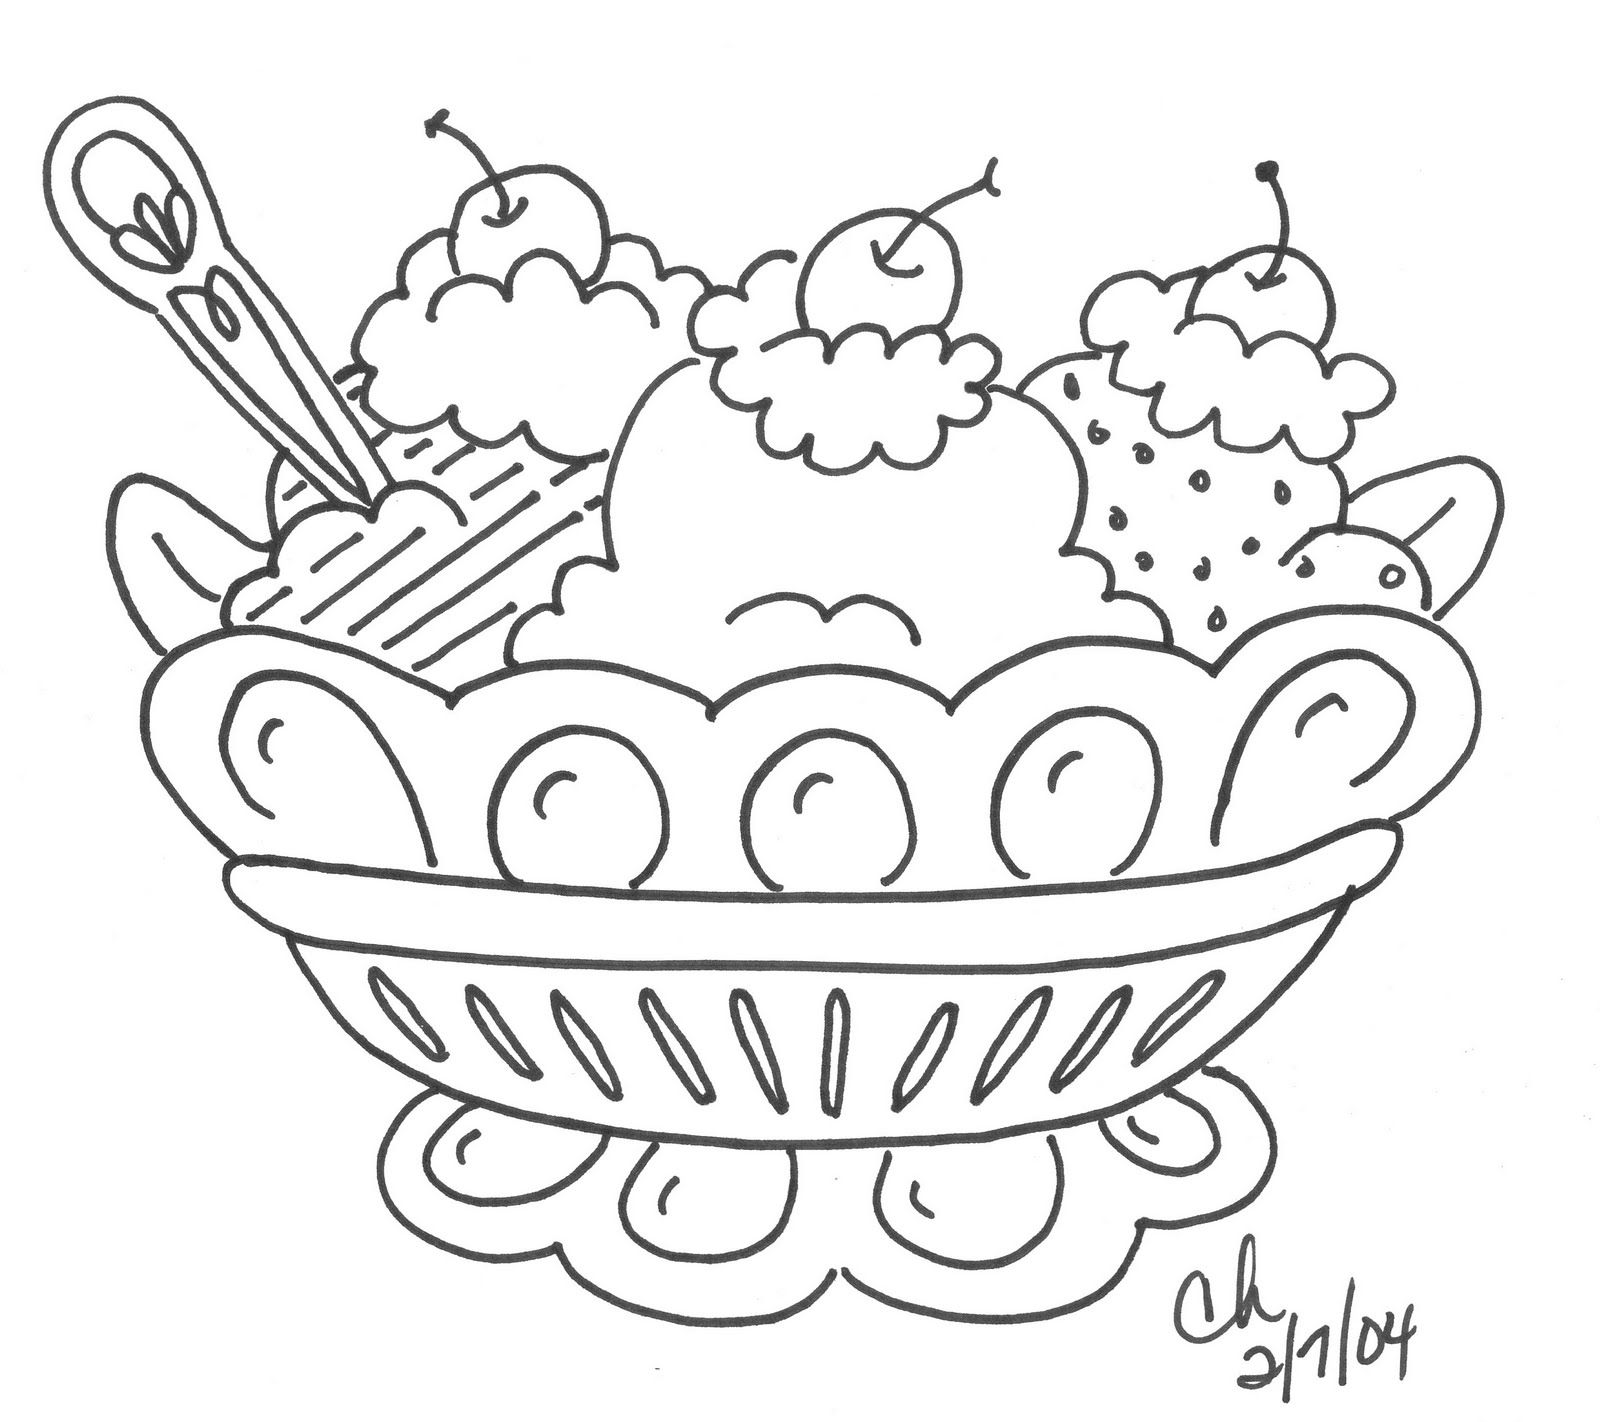 banana split coloring page banana split coloring pages best place to color coloring page banana split